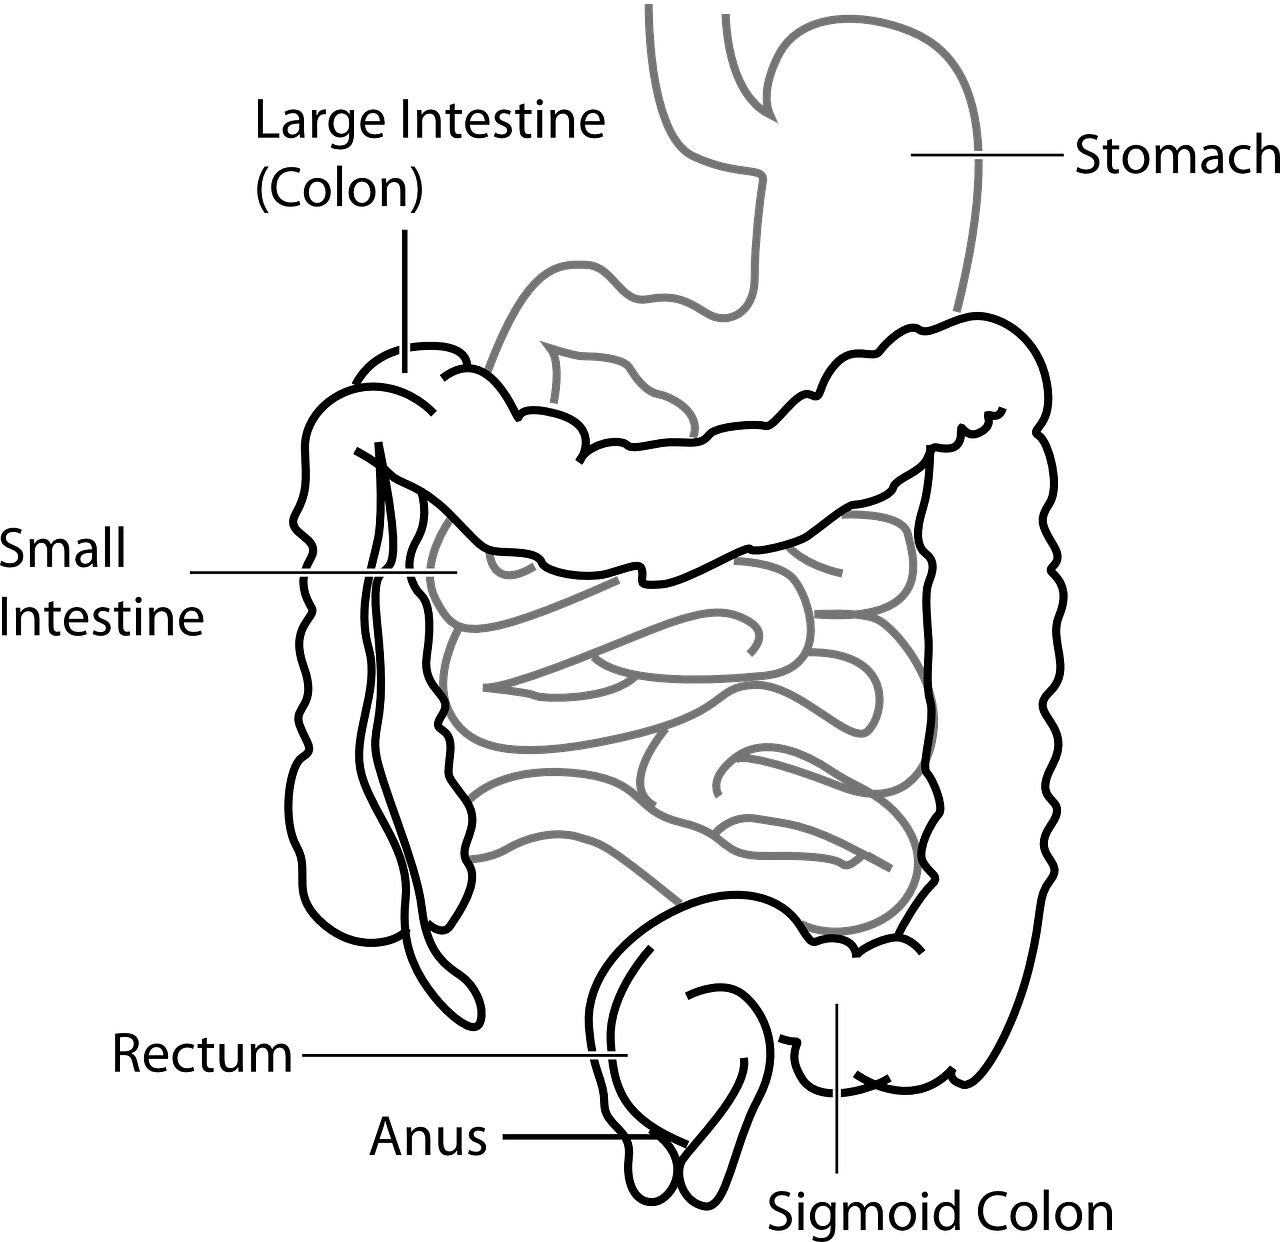 diagram digestive system free photo